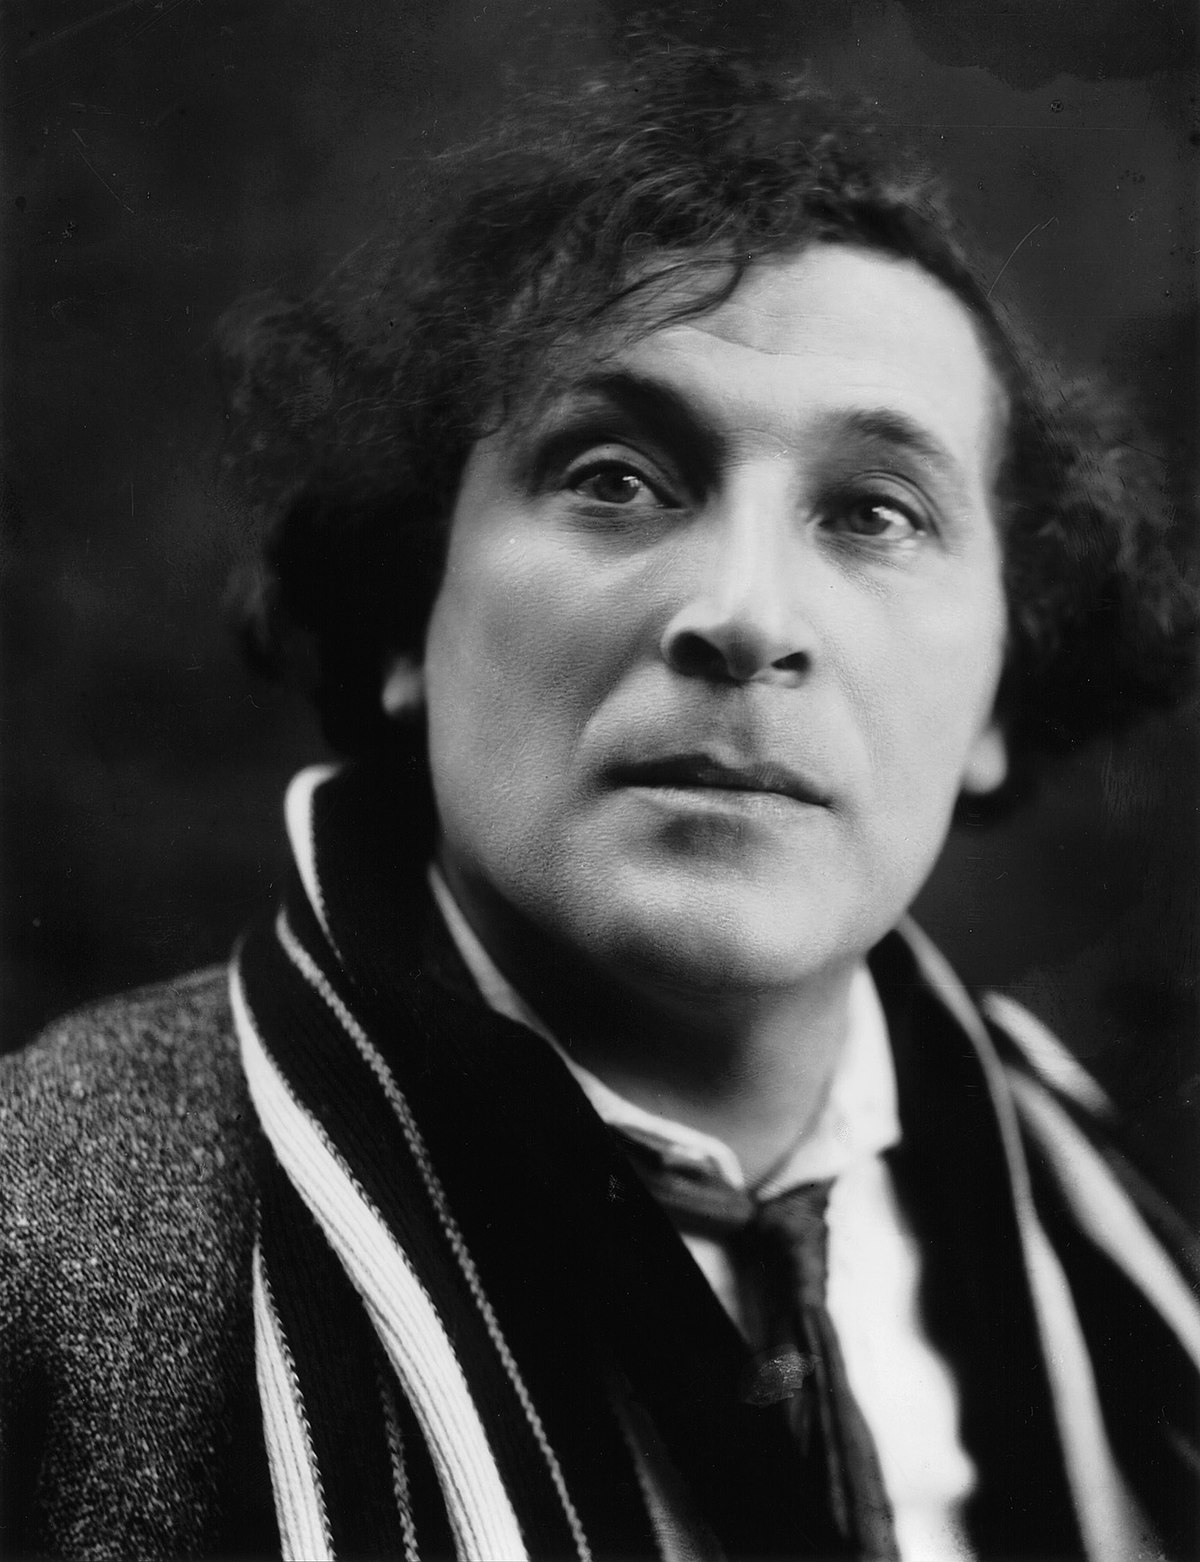 marc chagall quadri famosi : marc chagall naples :  marc chagall known for en 2020/2021